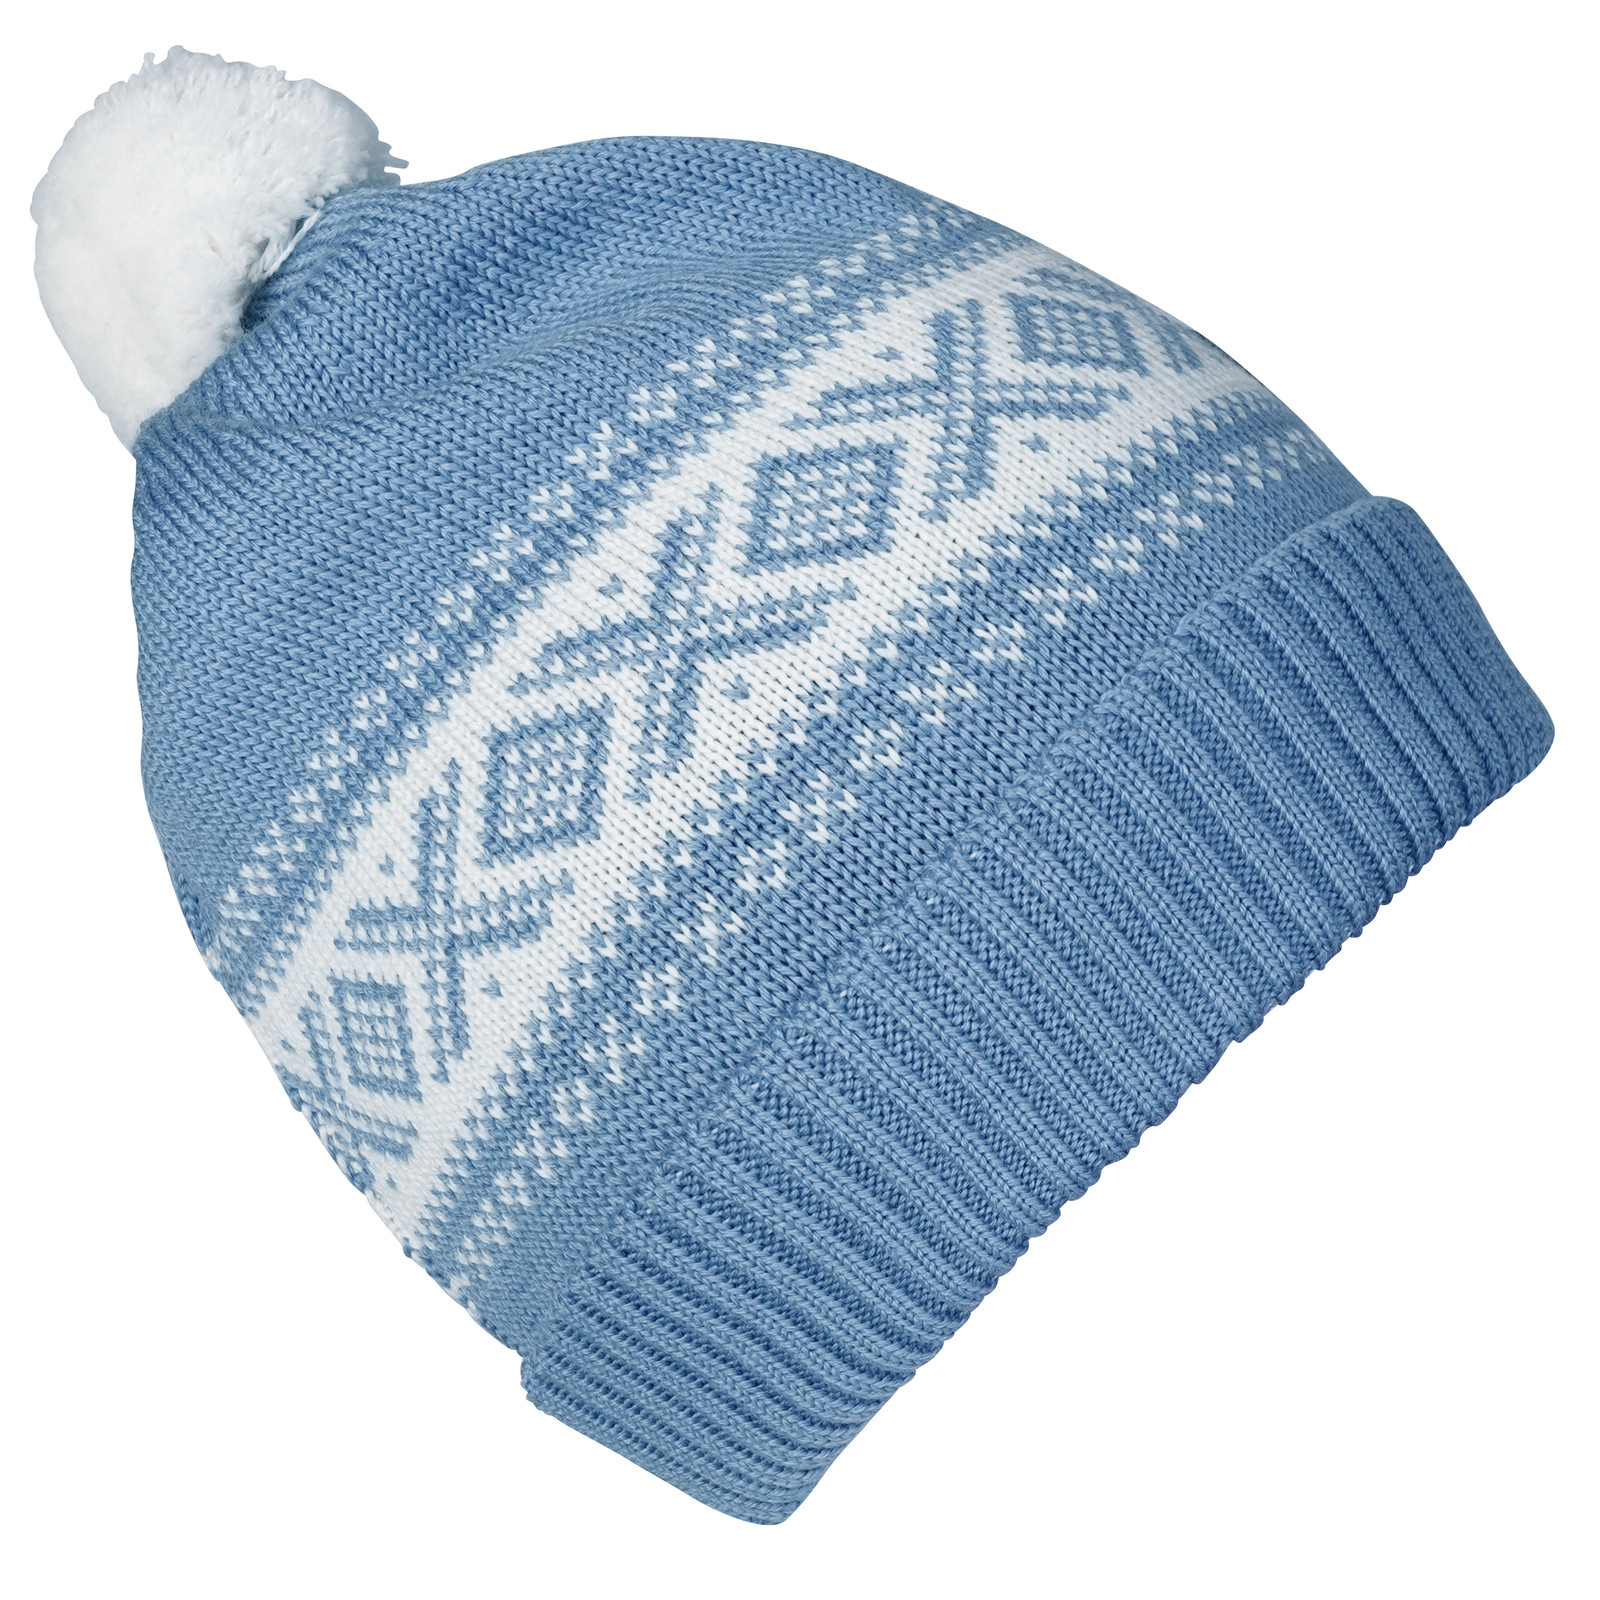 Dale of Norway Cortina Kids Hat 4-8, Blue Shadow/Off White, 43341-D